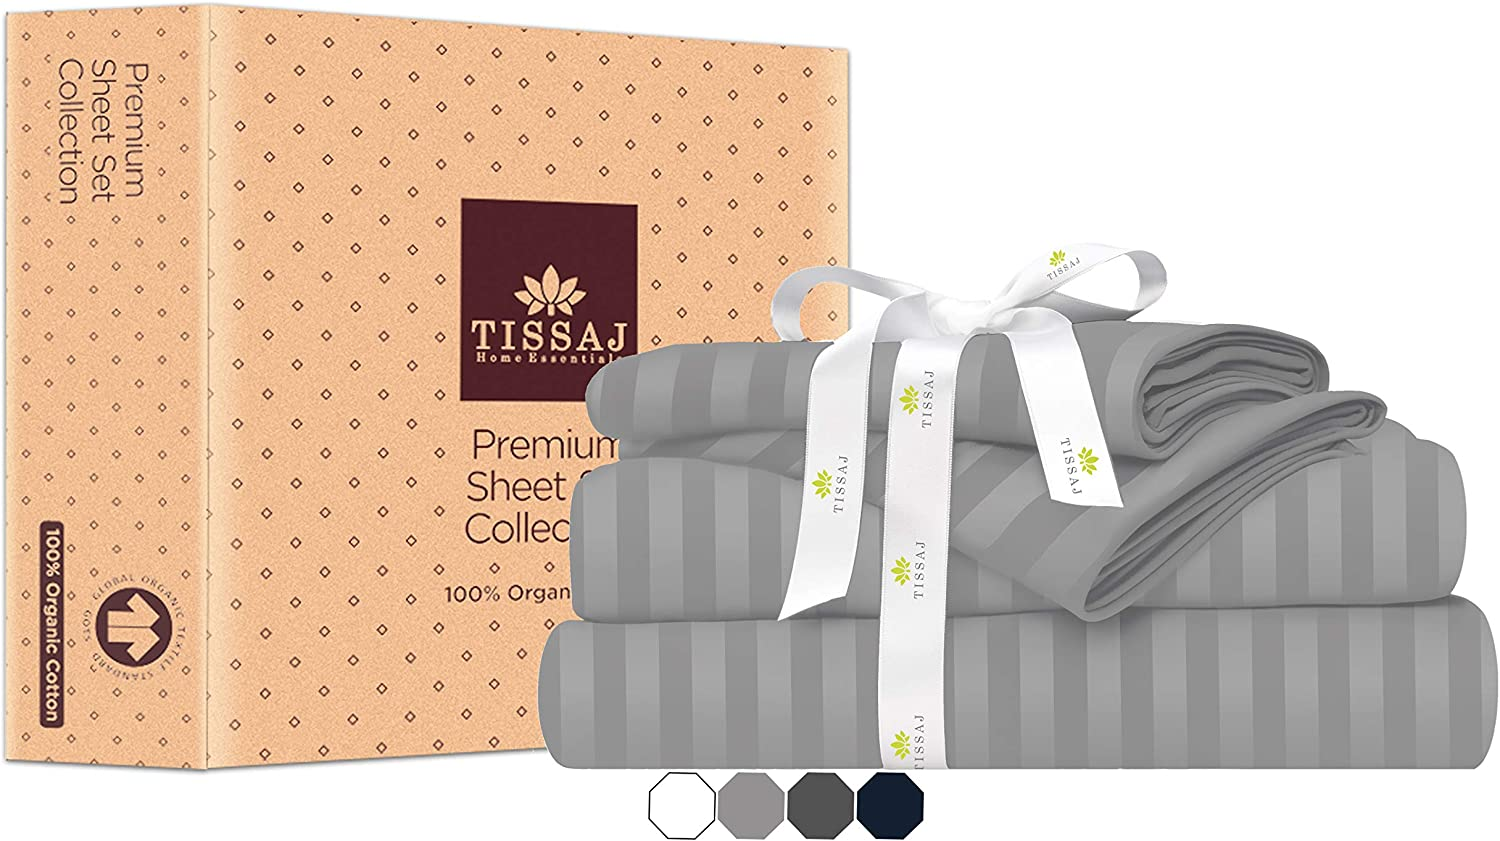 Tissaj Max 79% OFF Queen Size Bed Sheets Set Stripes Gray 100% GOT - Cloud New mail order